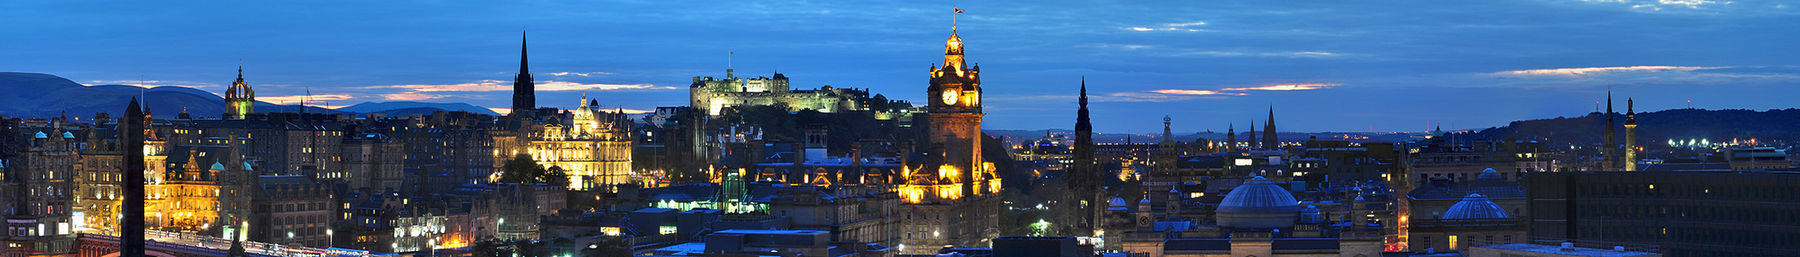 Edinburgh Night Panorama from Calton Hill banner.jpg